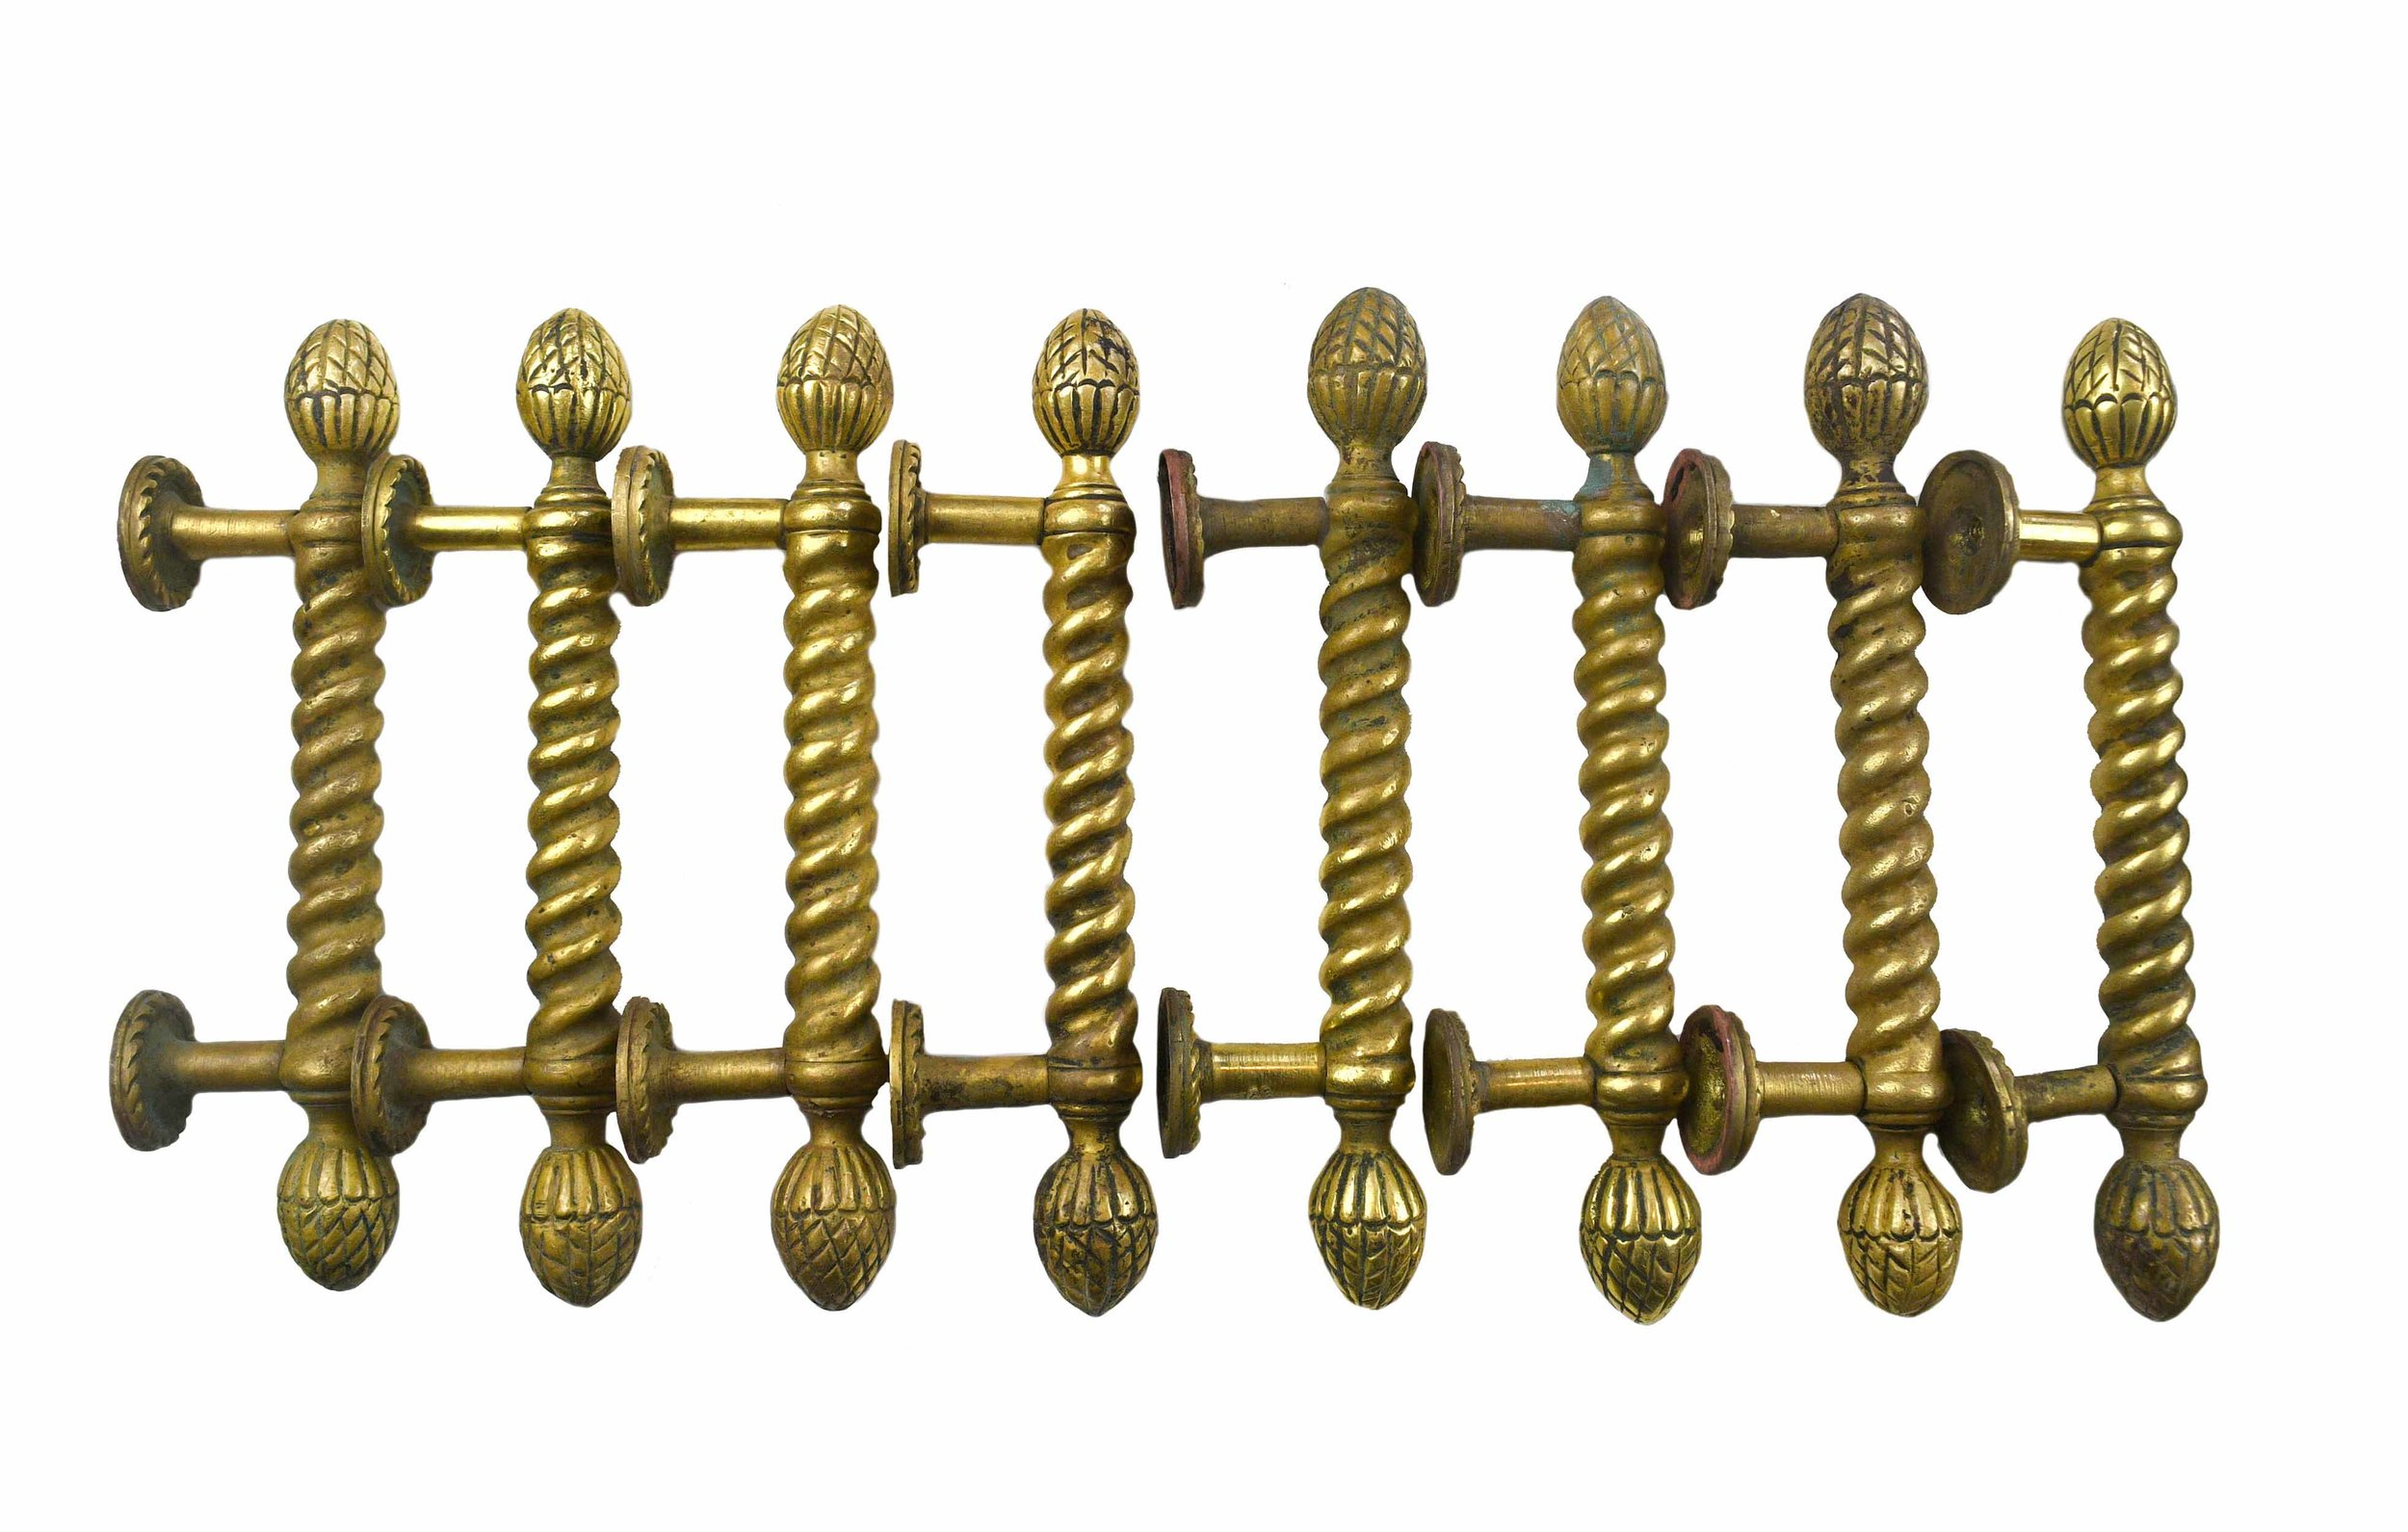 TWISTED CAST BRASS HANDLES AA# 48252   SOLD!